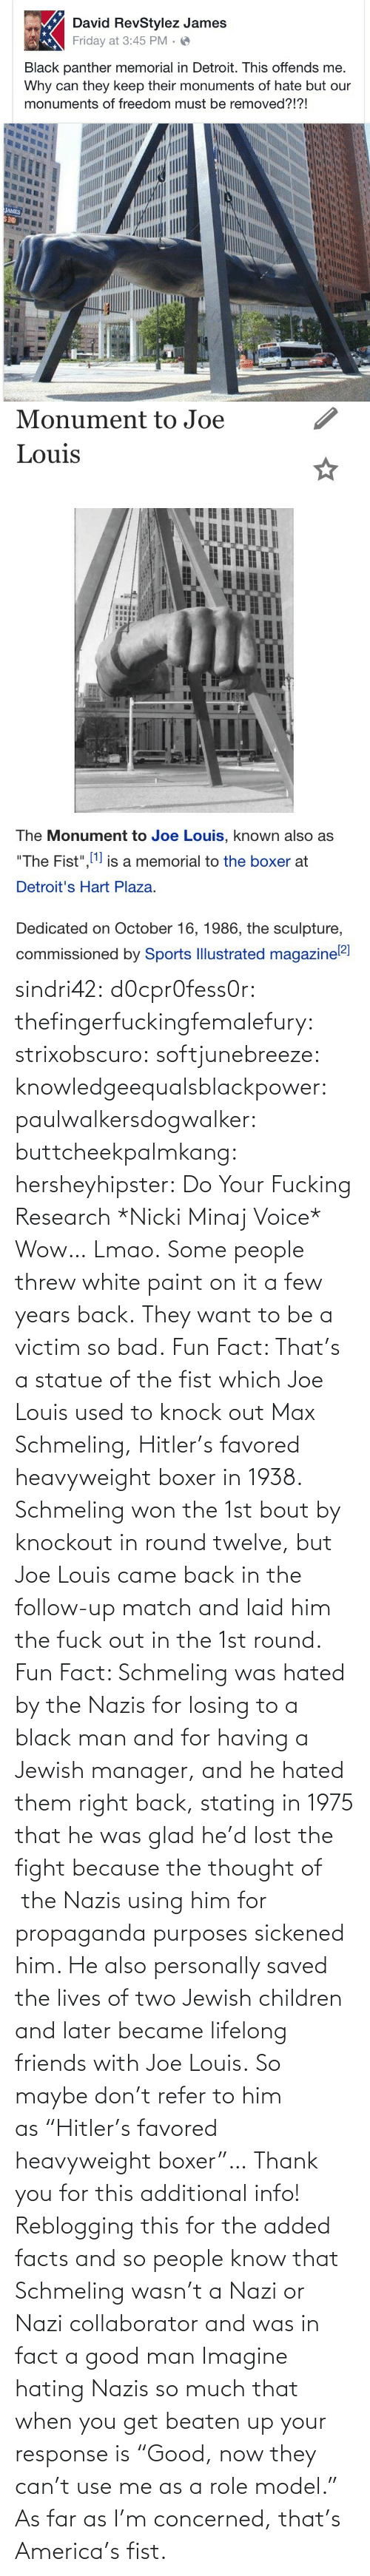 "America, Bad, and Children: sindri42:  d0cpr0fess0r:  thefingerfuckingfemalefury:  strixobscuro:  softjunebreeze:  knowledgeequalsblackpower:  paulwalkersdogwalker:   buttcheekpalmkang:   hersheyhipster:  Do Your Fucking Research *Nicki Minaj Voice*    Wow… Lmao.   Some people threw white paint on it a few years back.   They want to be a victim so bad.  Fun Fact: That's a statue of the fist which Joe Louis used to knock out Max Schmeling, Hitler's favored heavyweight boxer in 1938. Schmeling won the 1st bout by knockout in round twelve, but Joe Louis came back in the follow-up match and laid him the fuck out in the 1st round.  Fun Fact: Schmeling was hated by the Nazis for losing to a black man and for having a Jewish manager, and he hated them right back, stating in 1975 that he was glad he'd lost the fight because the thought of  the Nazis using him for propaganda purposes sickened him. He also personally saved the lives of two Jewish children and later became lifelong friends with Joe Louis. So maybe don't refer to him as ""Hitler's favored heavyweight boxer""…  Thank you for this additional info! Reblogging this for the added facts and so people know that Schmeling wasn't a Nazi or Nazi collaborator and was in fact a good man   Imagine hating Nazis so much that when you get beaten up your response is ""Good, now they can't use me as a role model.""  As far as I'm concerned, that's America's fist."